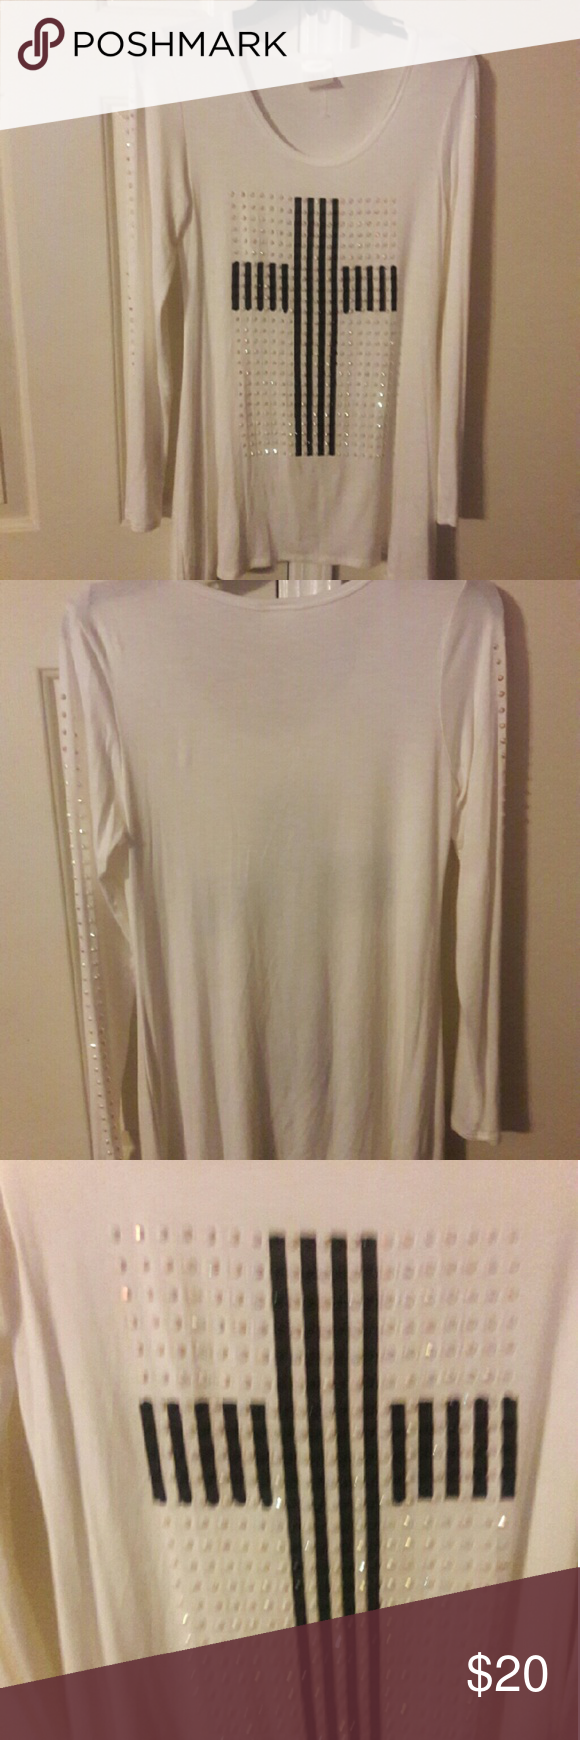 Vocal long sleeve cotton  blouse Rhinestone applique, nice flowing material Vocal California Tops Blouses